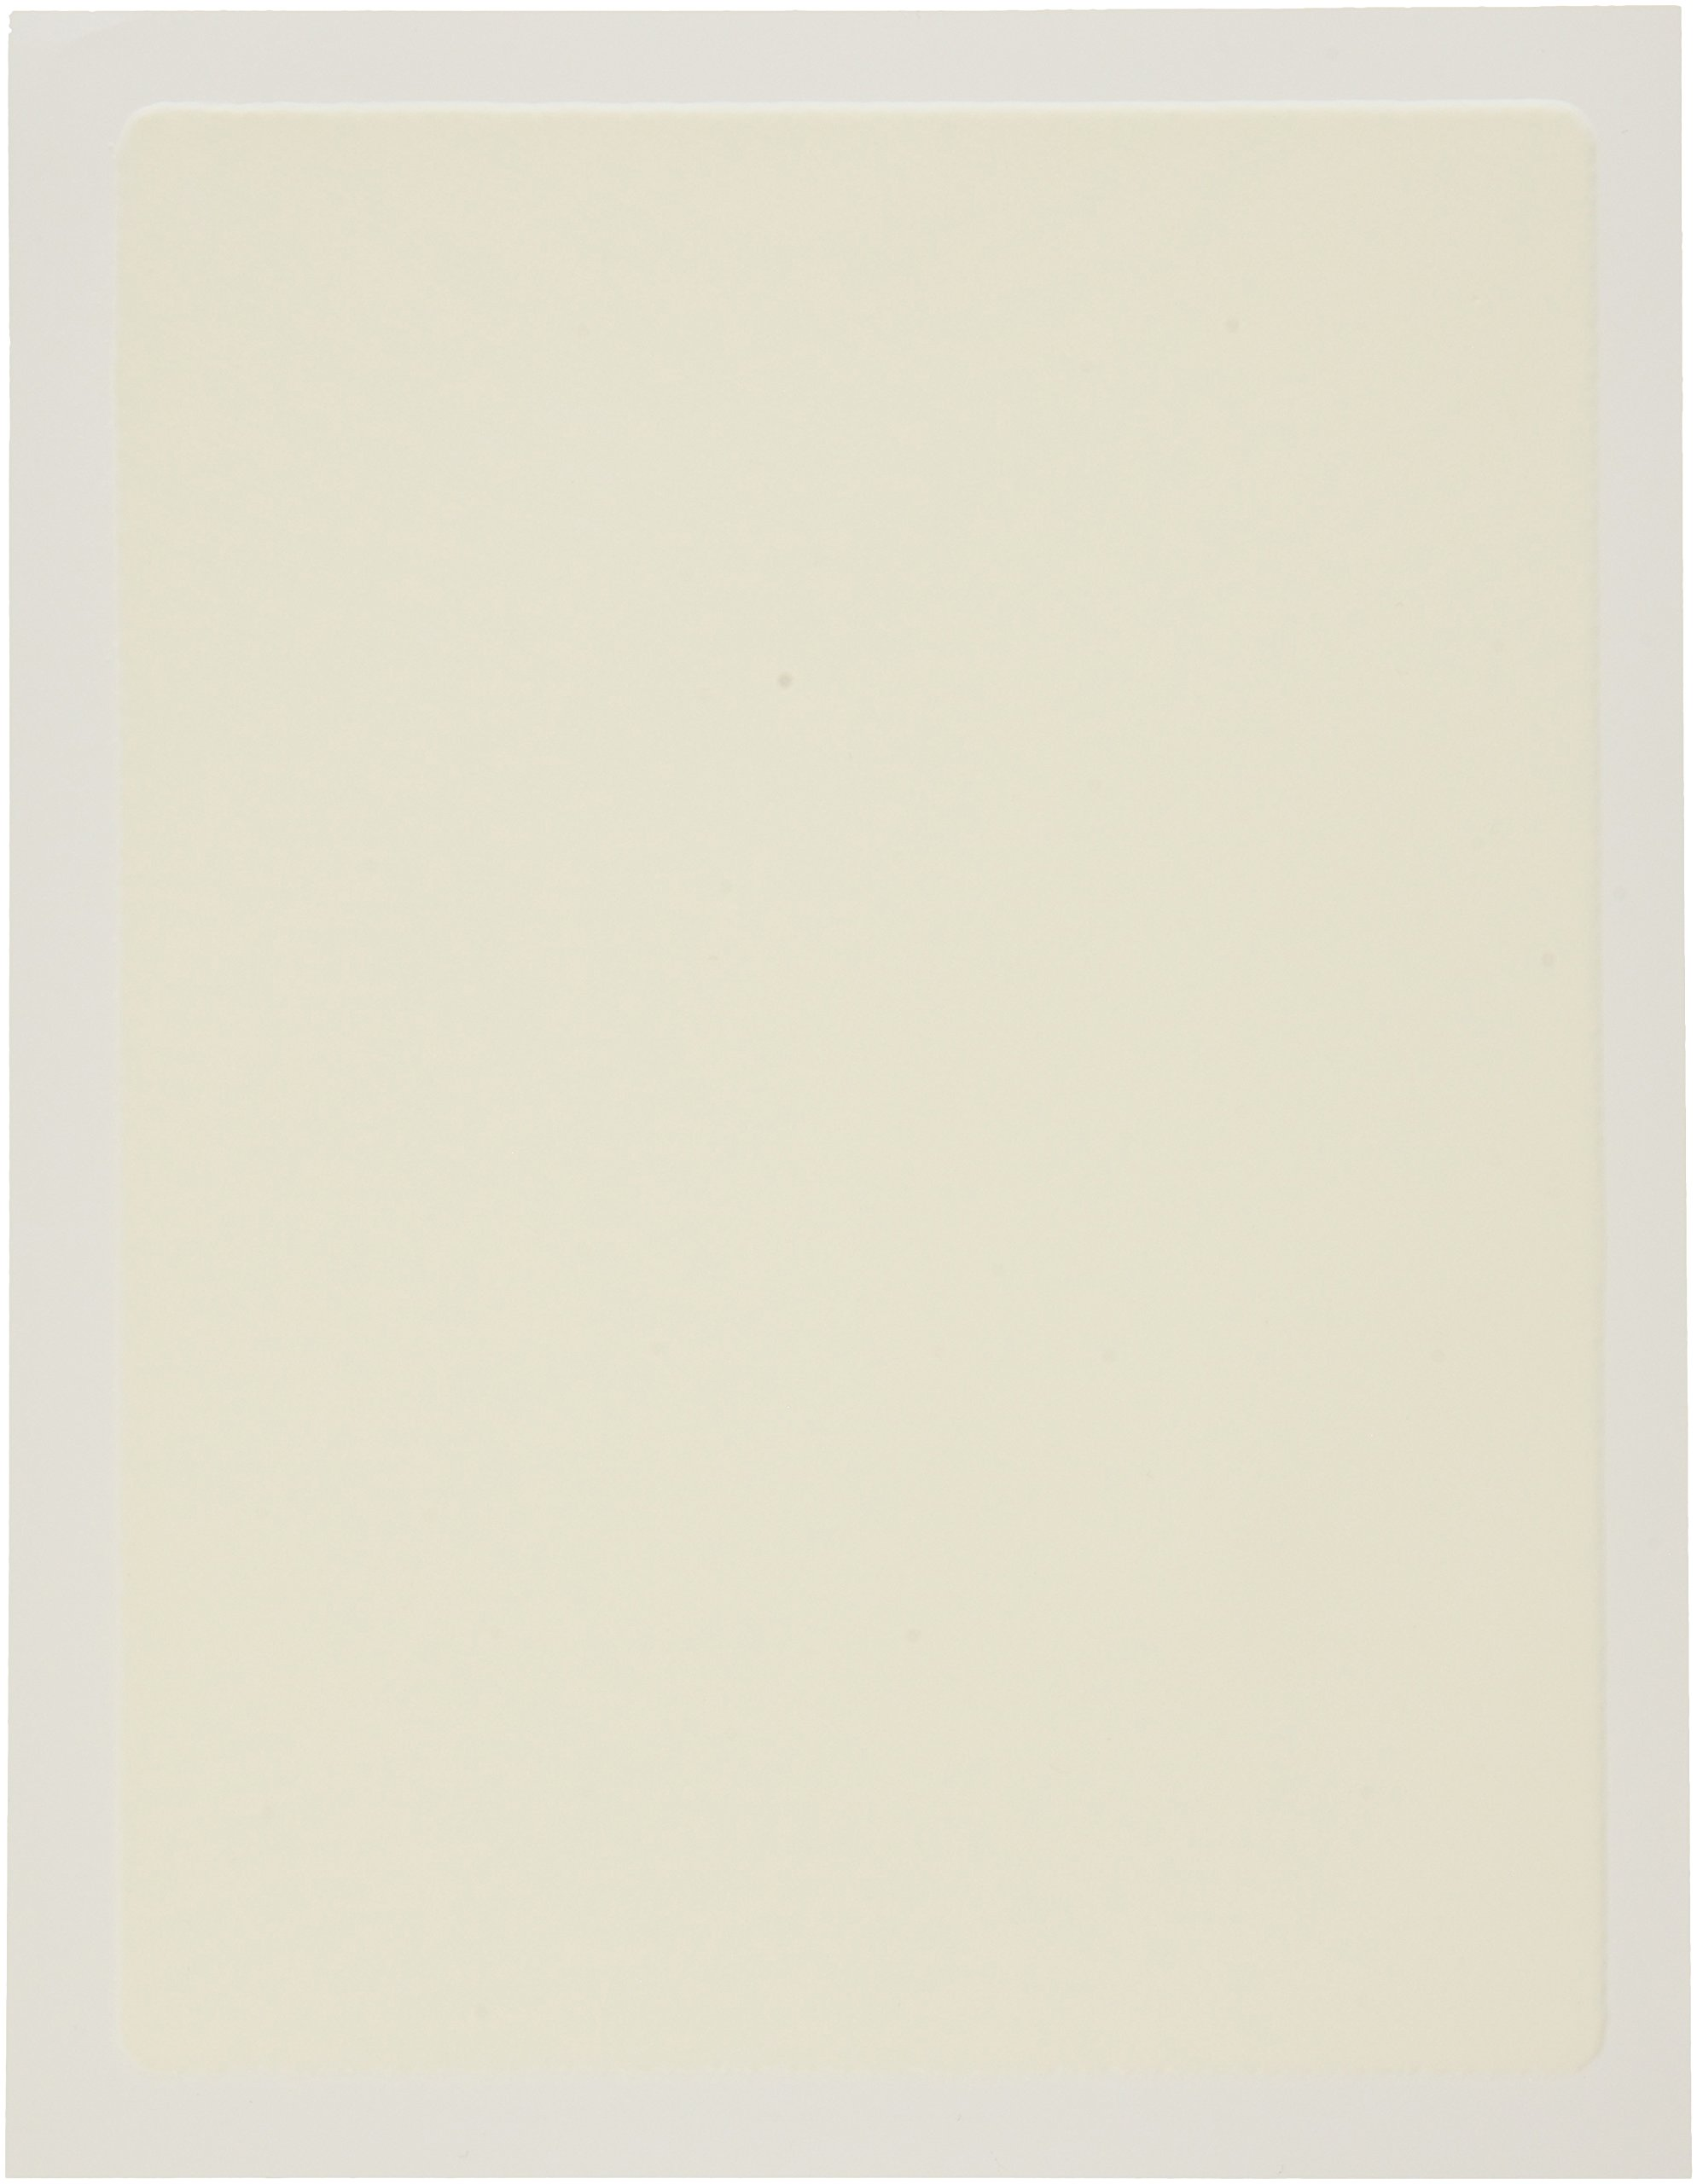 Oasis Supply Edible Frosting Sheets for Cake Top Printing, 7.5 by 10-Inch, 24 Sheets, White